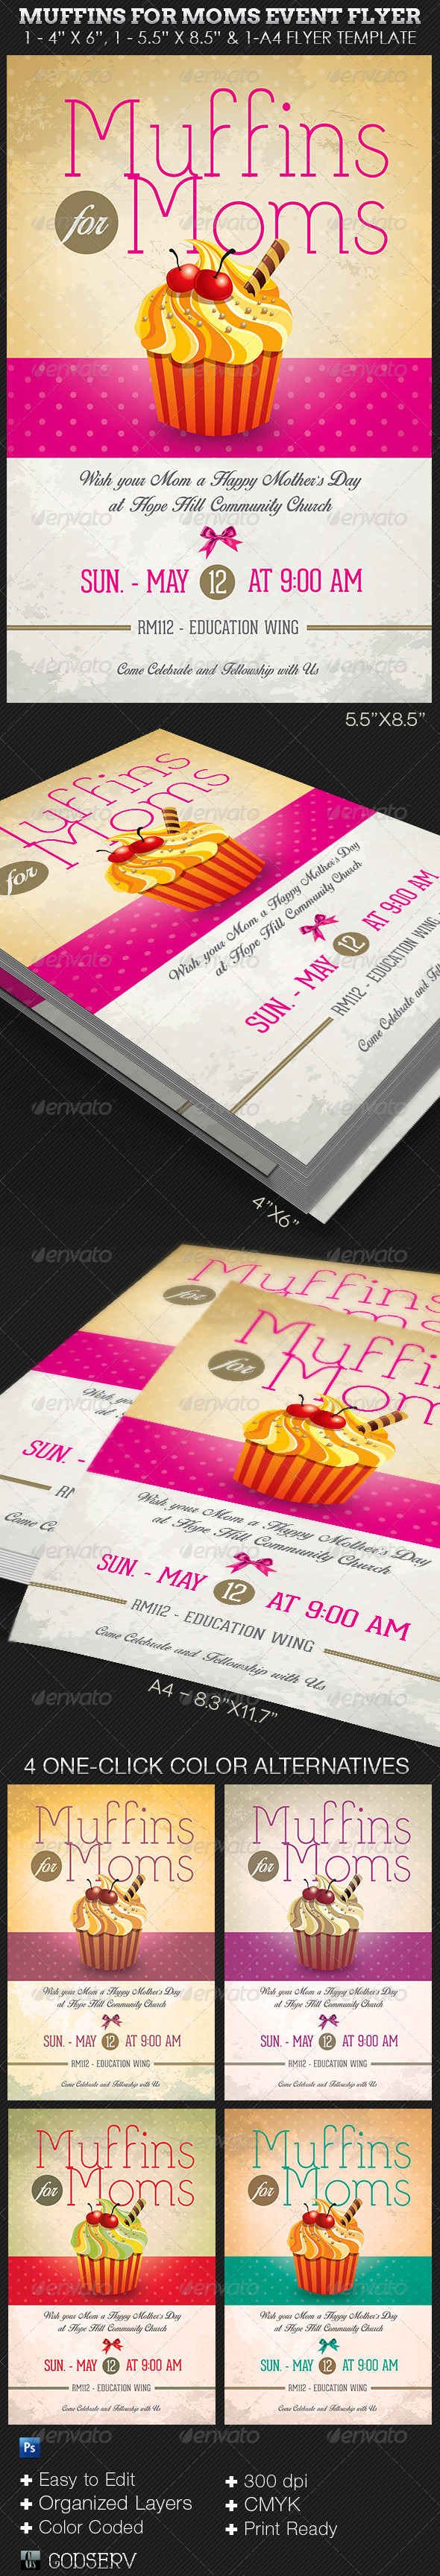 Muffins for Moms Event Flyer Template - Church Flyers